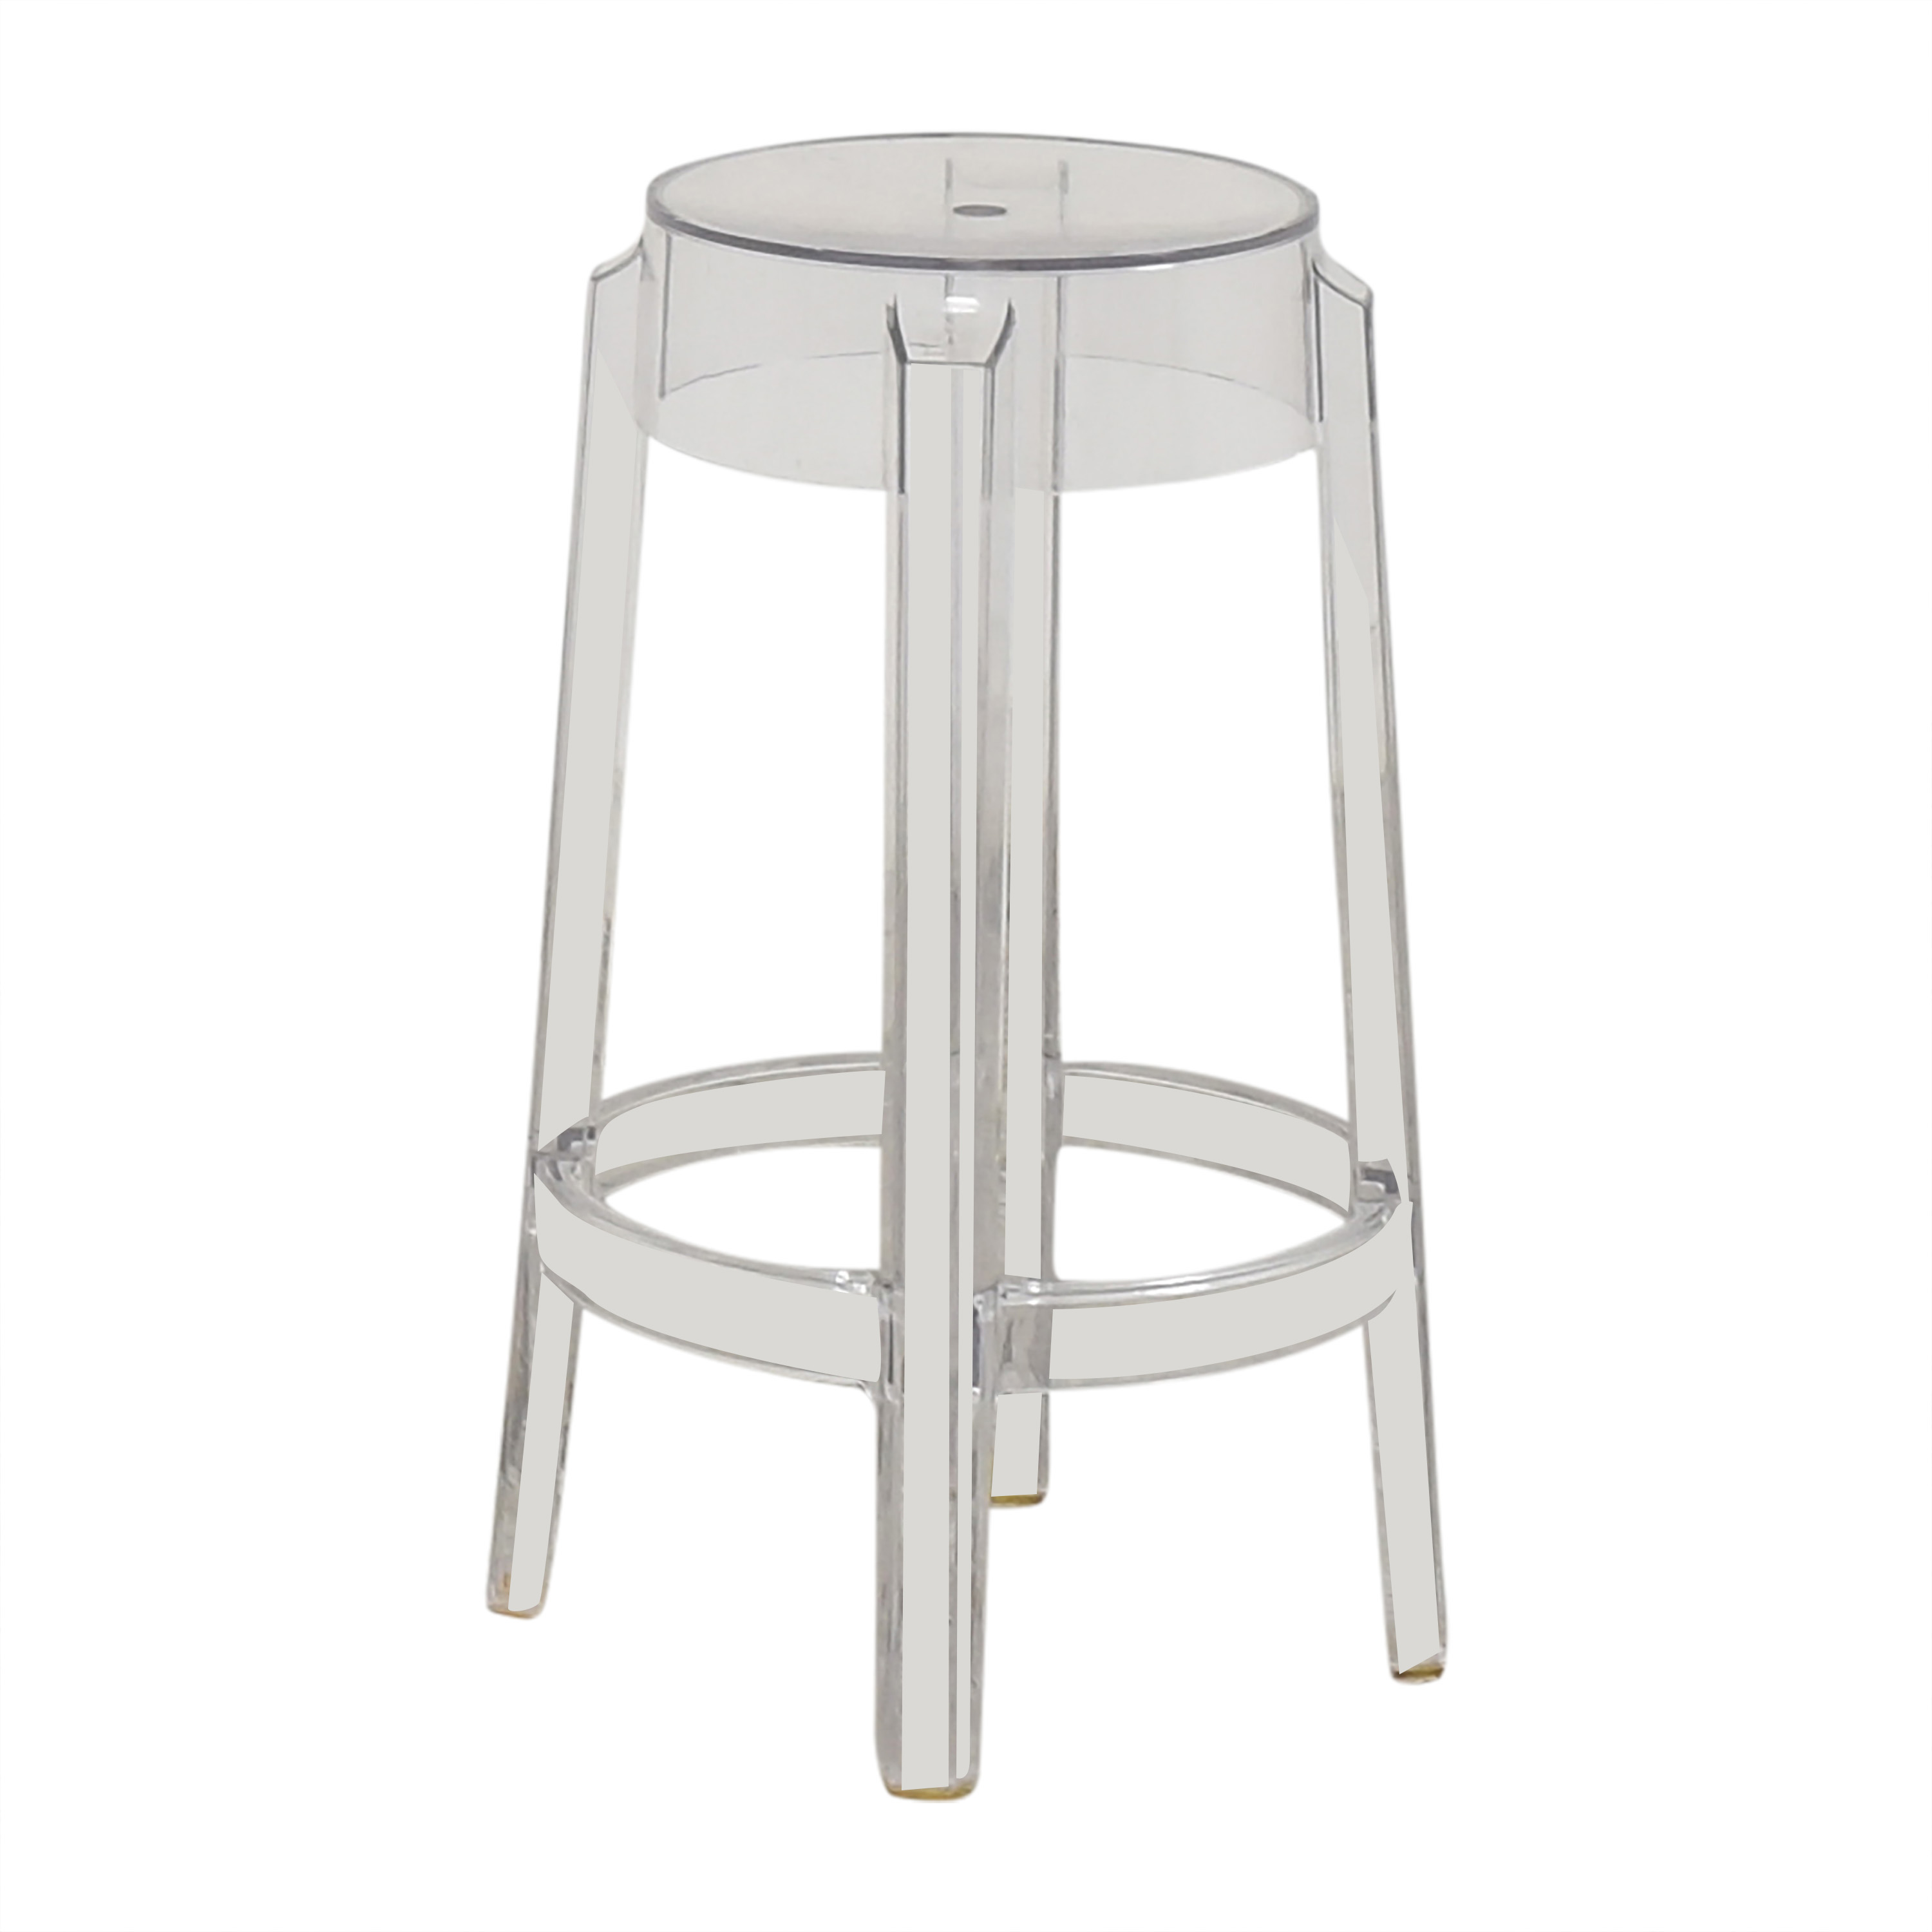 Kartell Charles Ghost Counter Stool by Phillipe Starck / Chairs